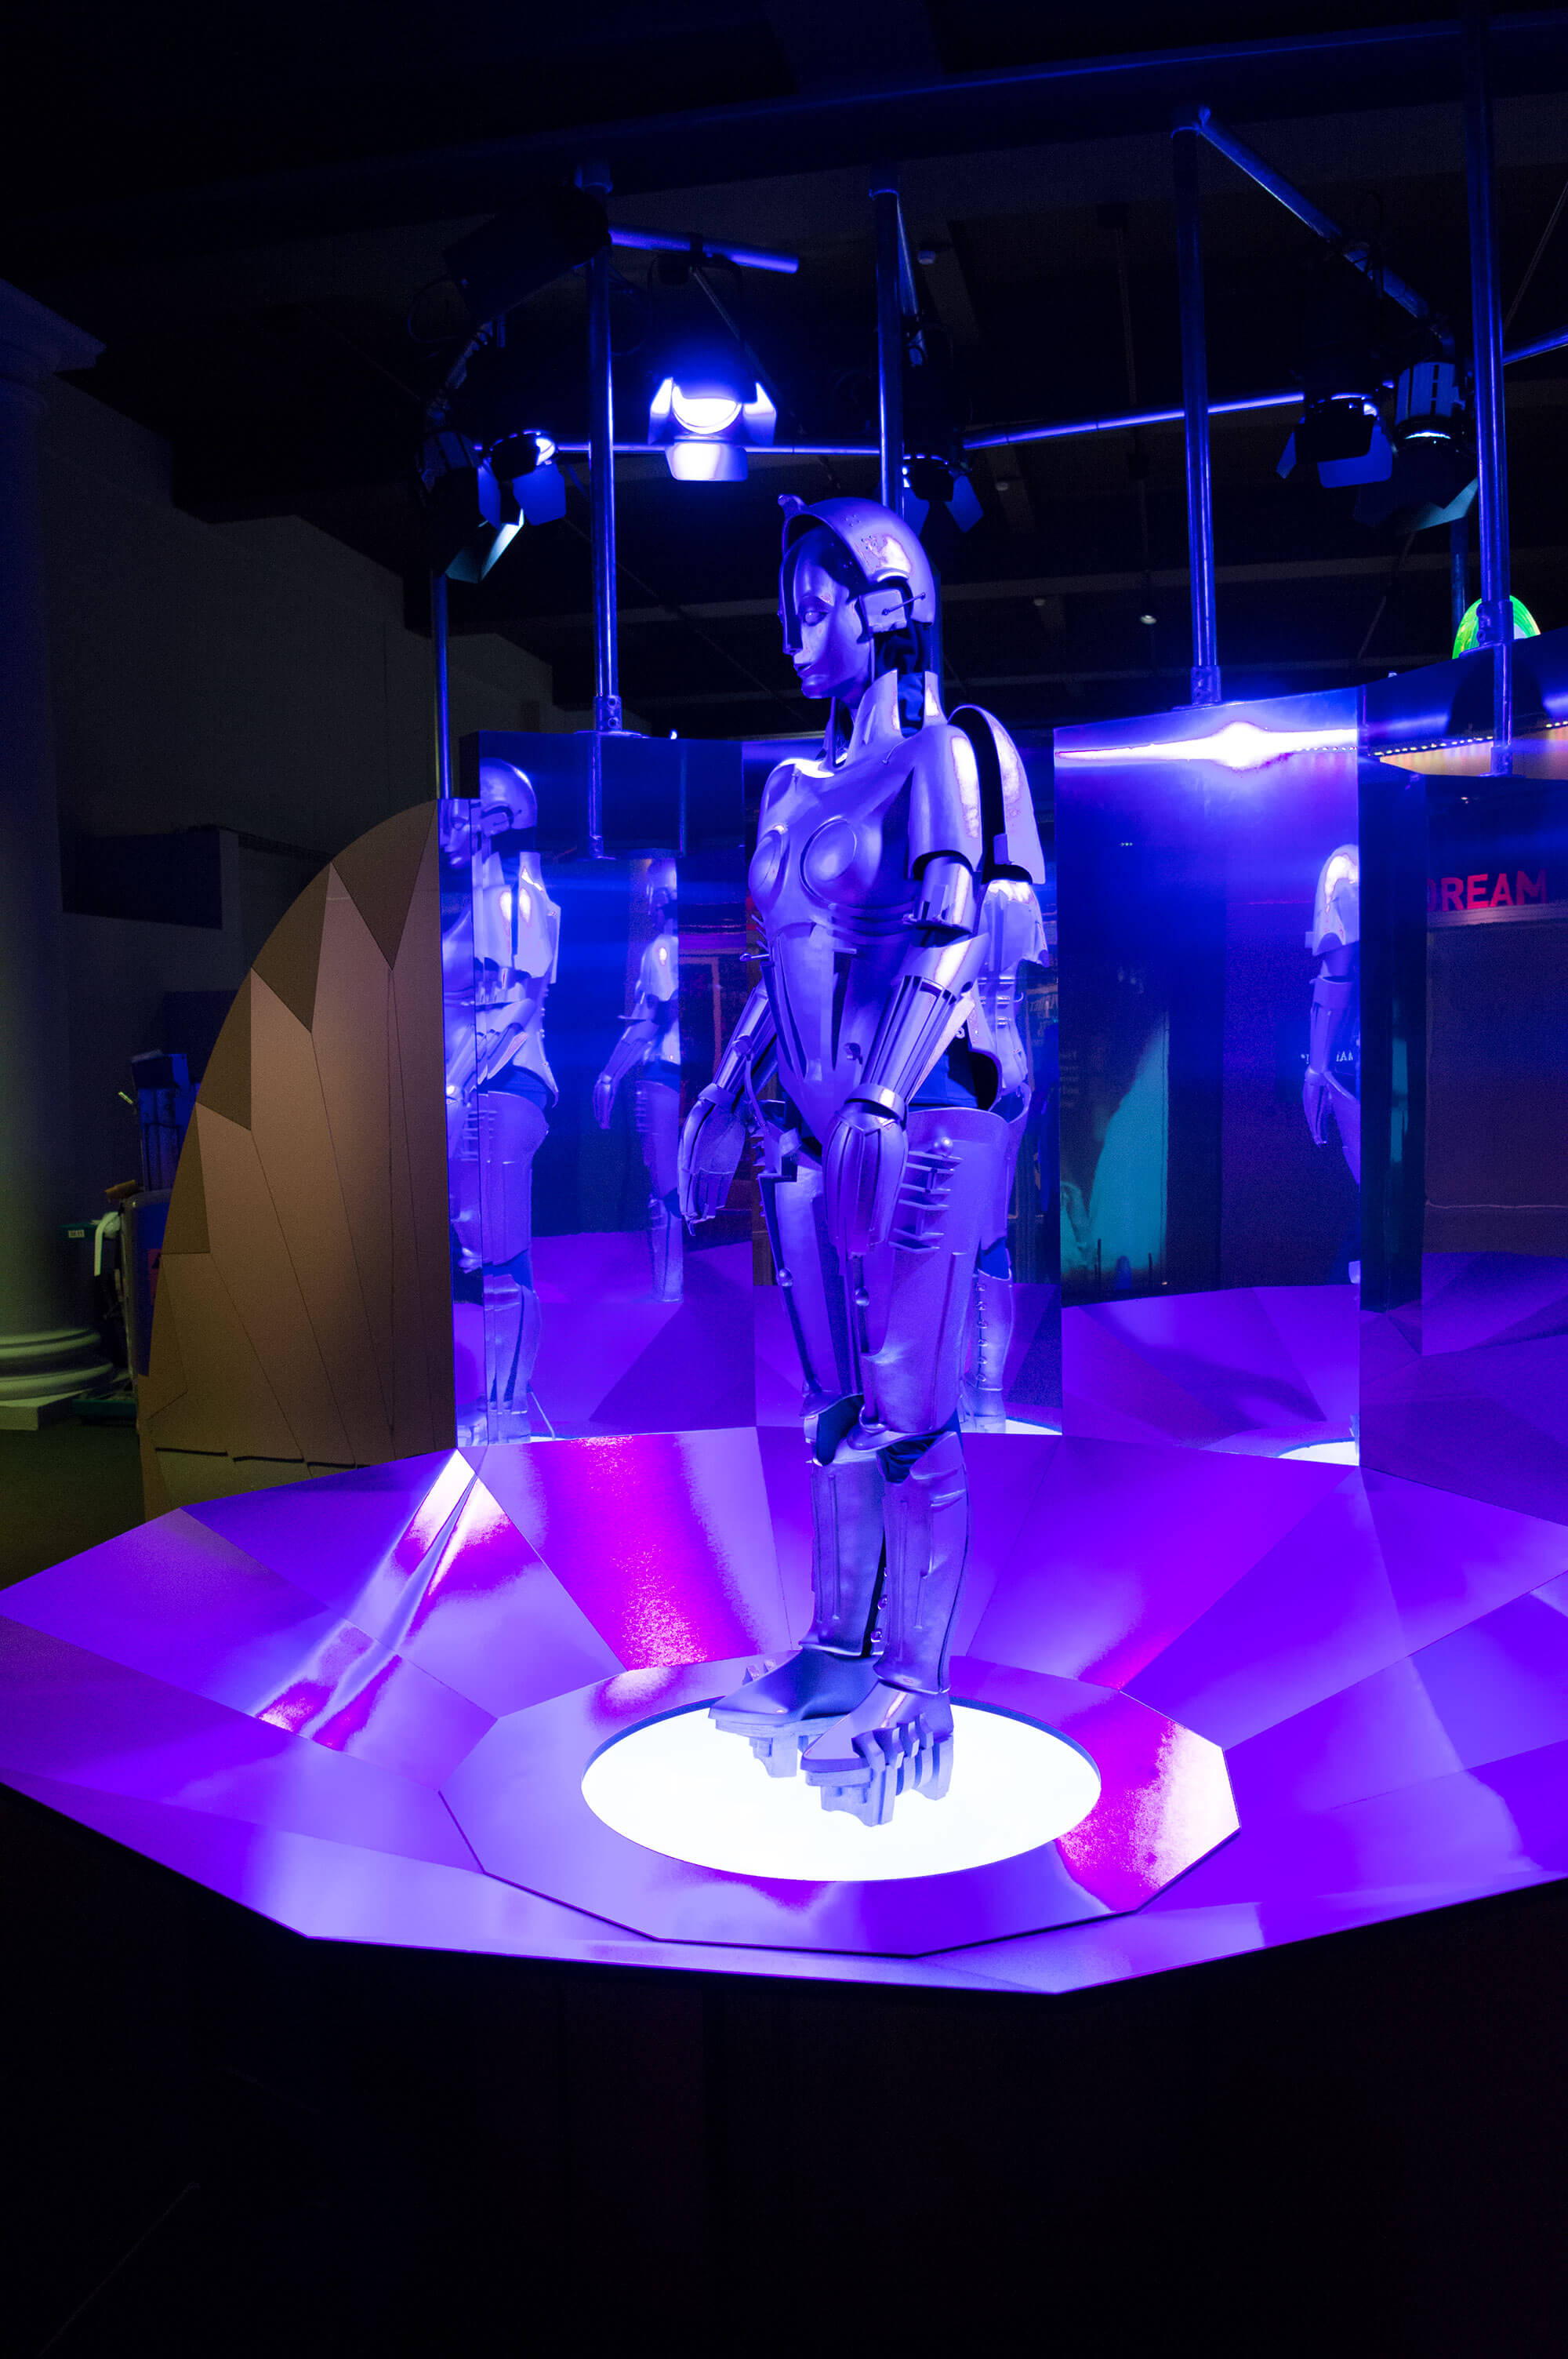 robots-science-museum-4-mjlighting